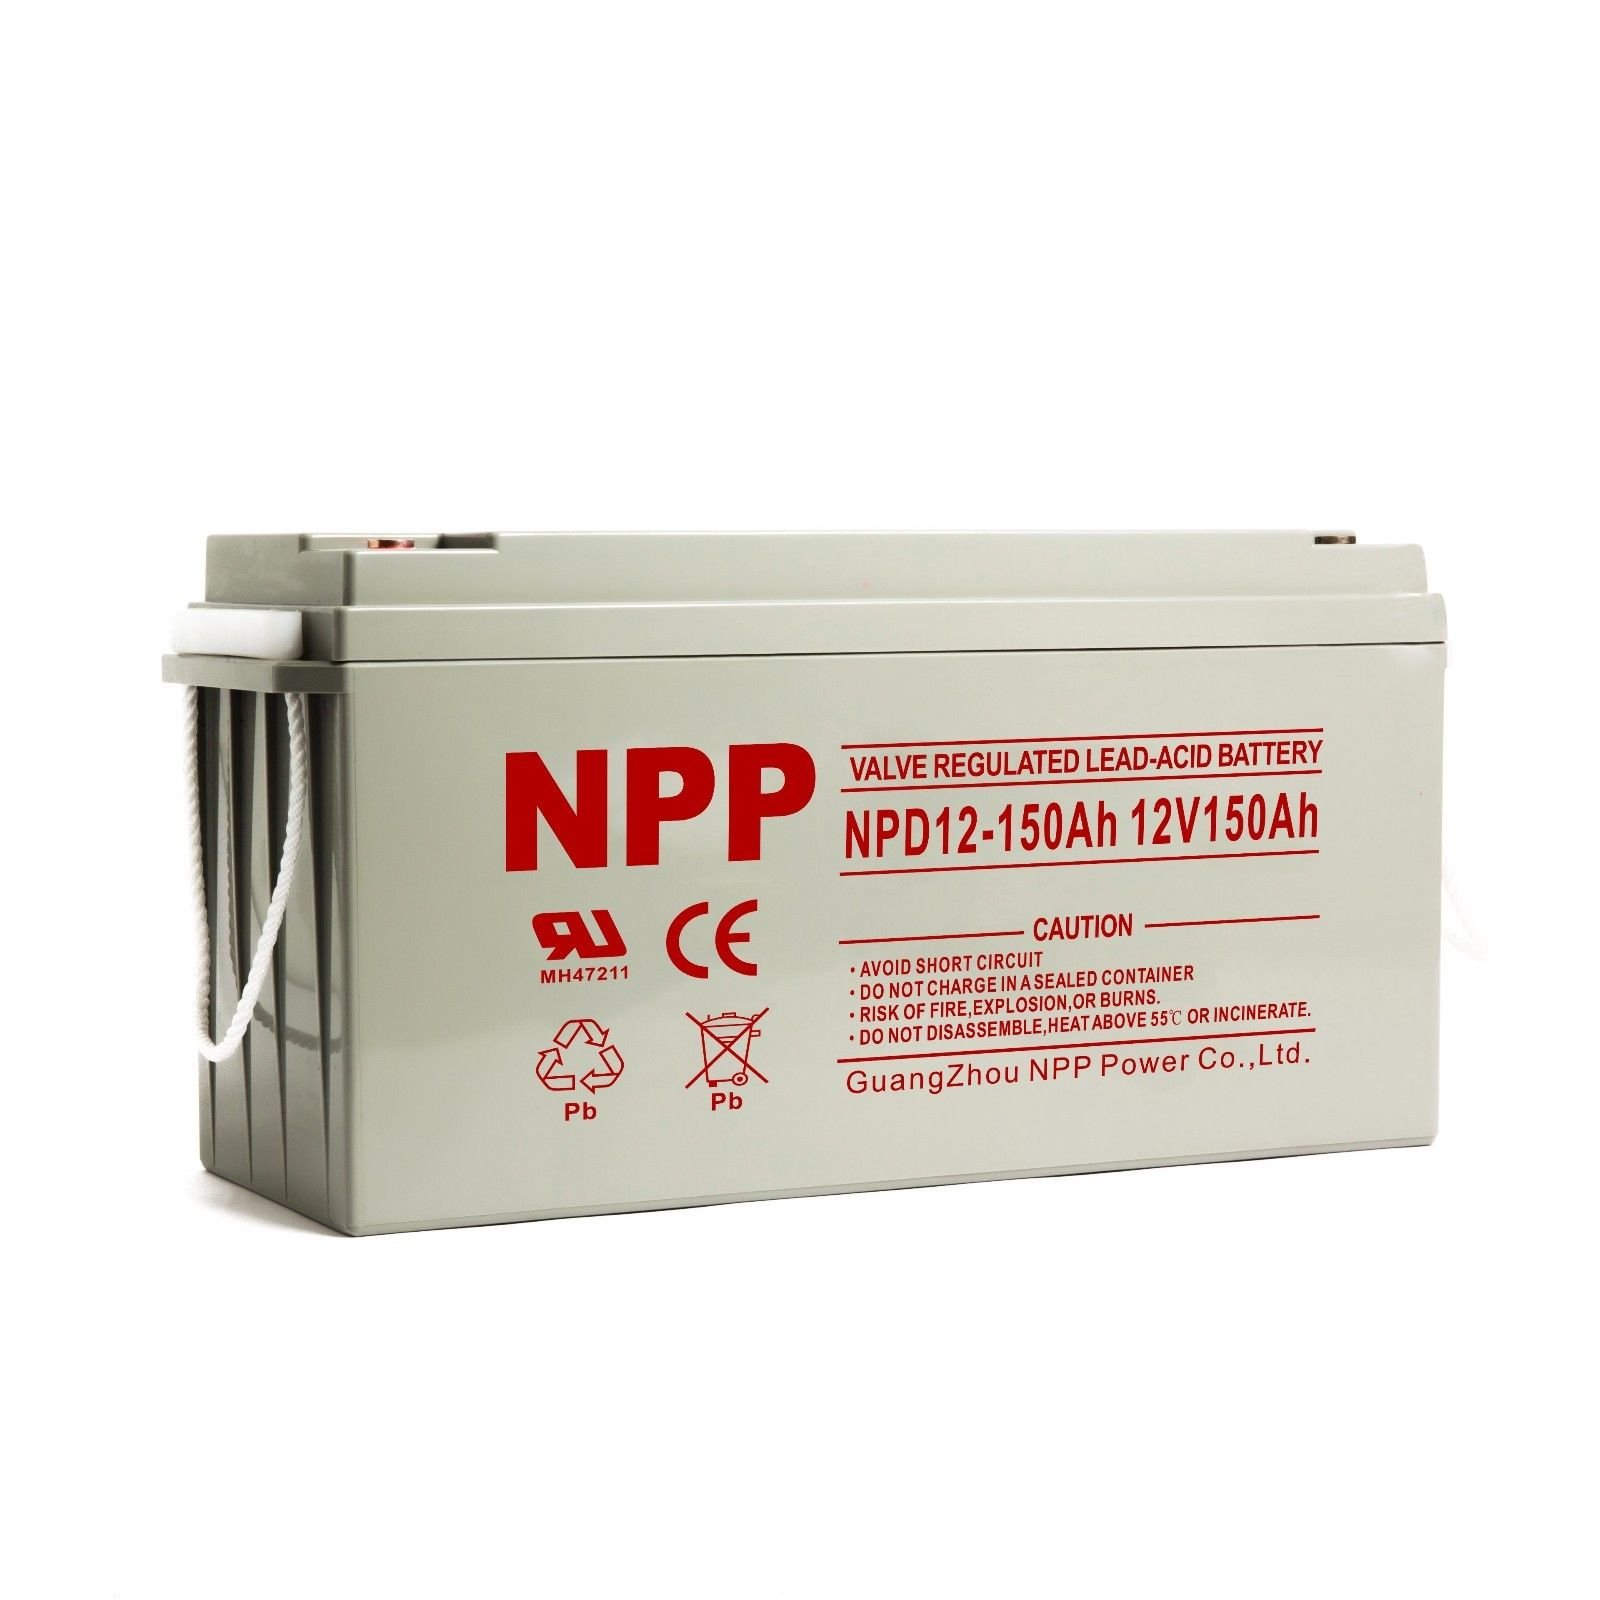 NPP NPD12-150Ah AGM Rechargeable Deep Cycle Sealed Lead Acid 12V 150Ah Battery with Button Style Terminals